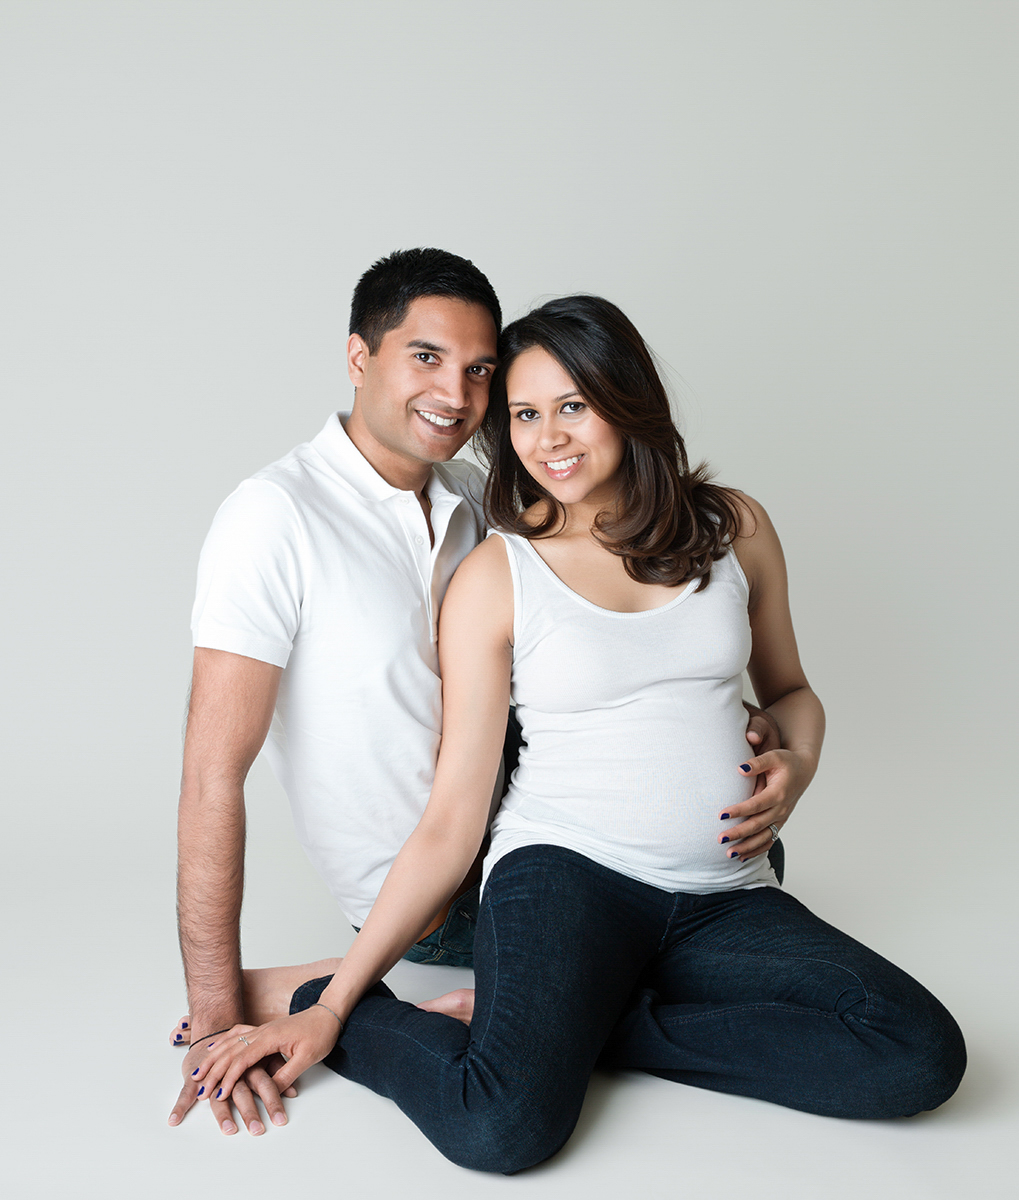 maternity-pregnancy-photography-London-31